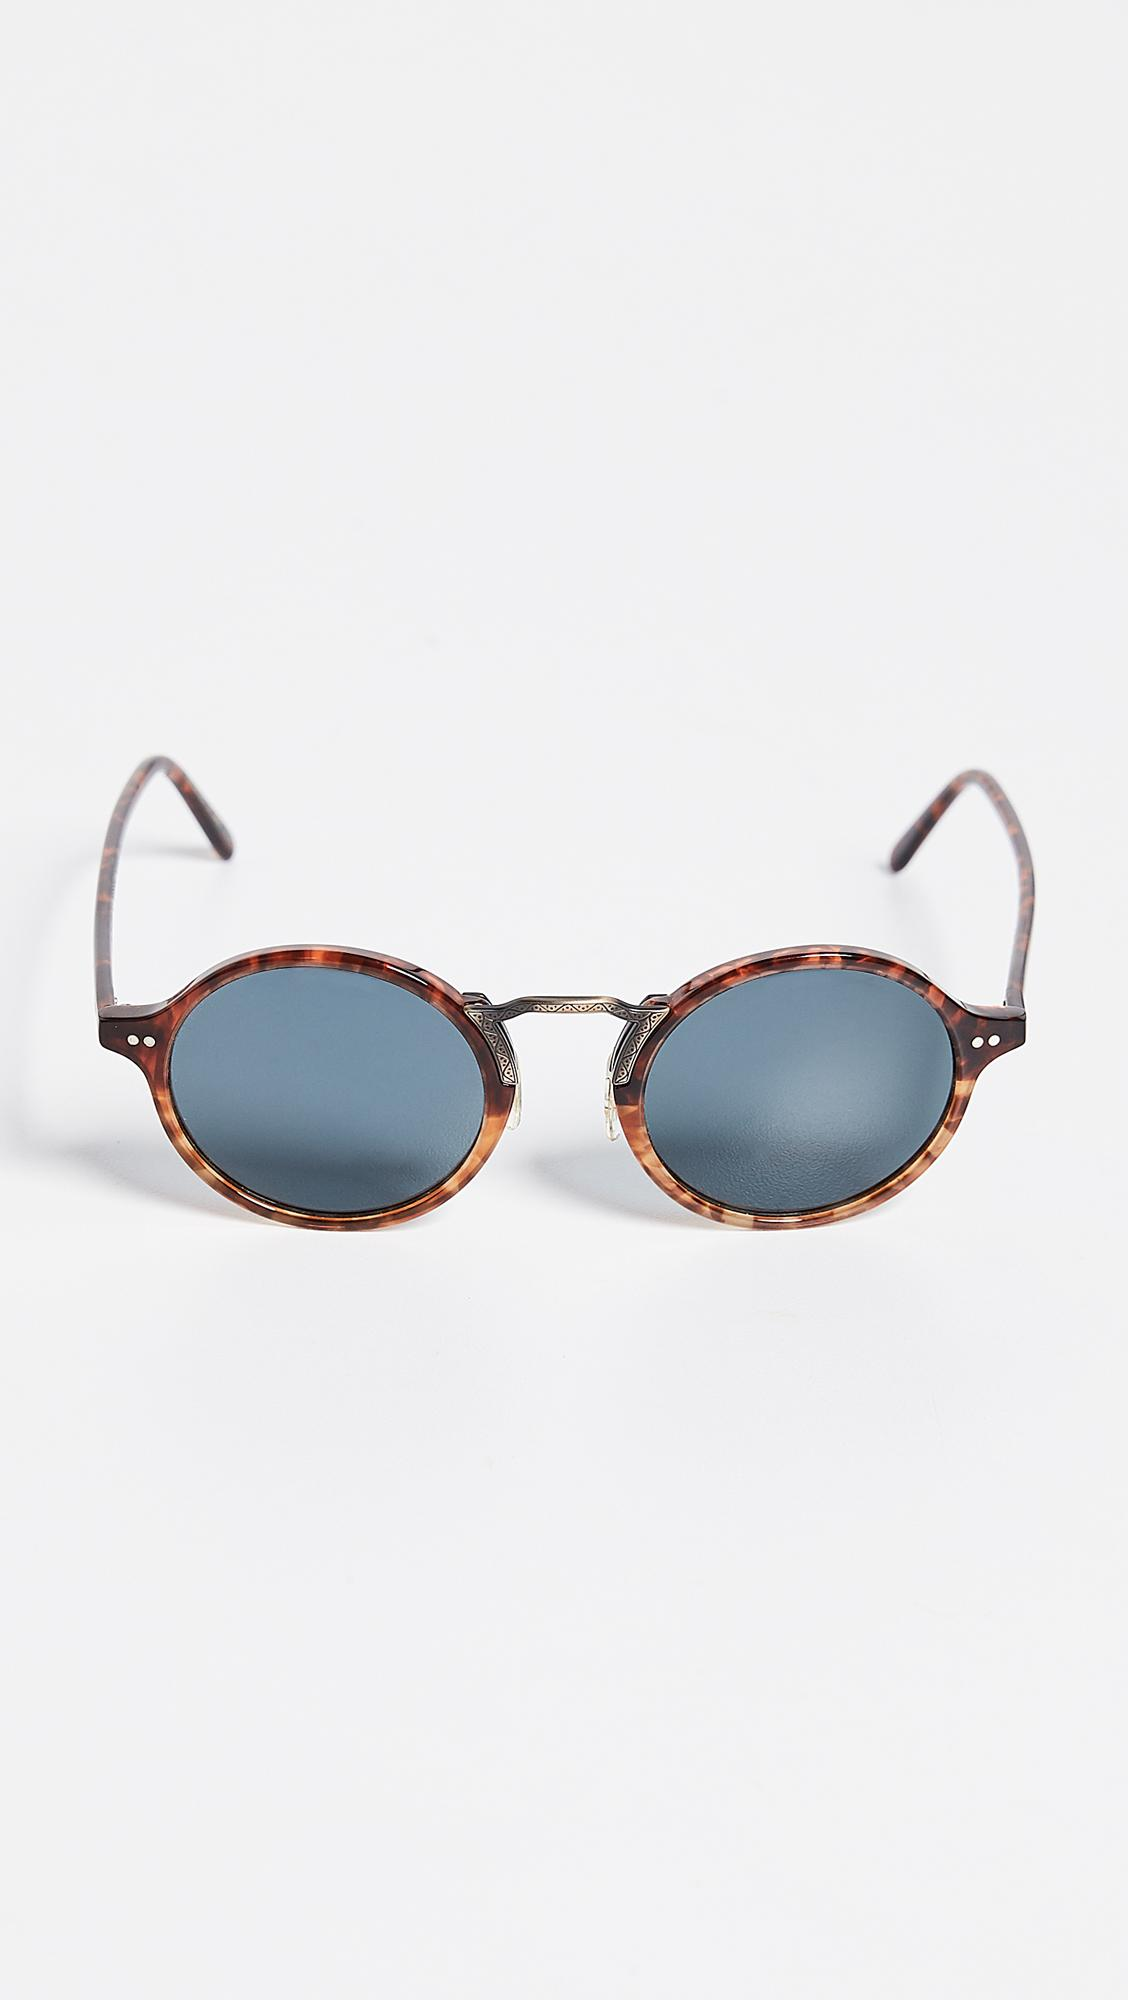 23cbb27a088 Lyst - Oliver Peoples Kosa Sunglasses in Blue for Men